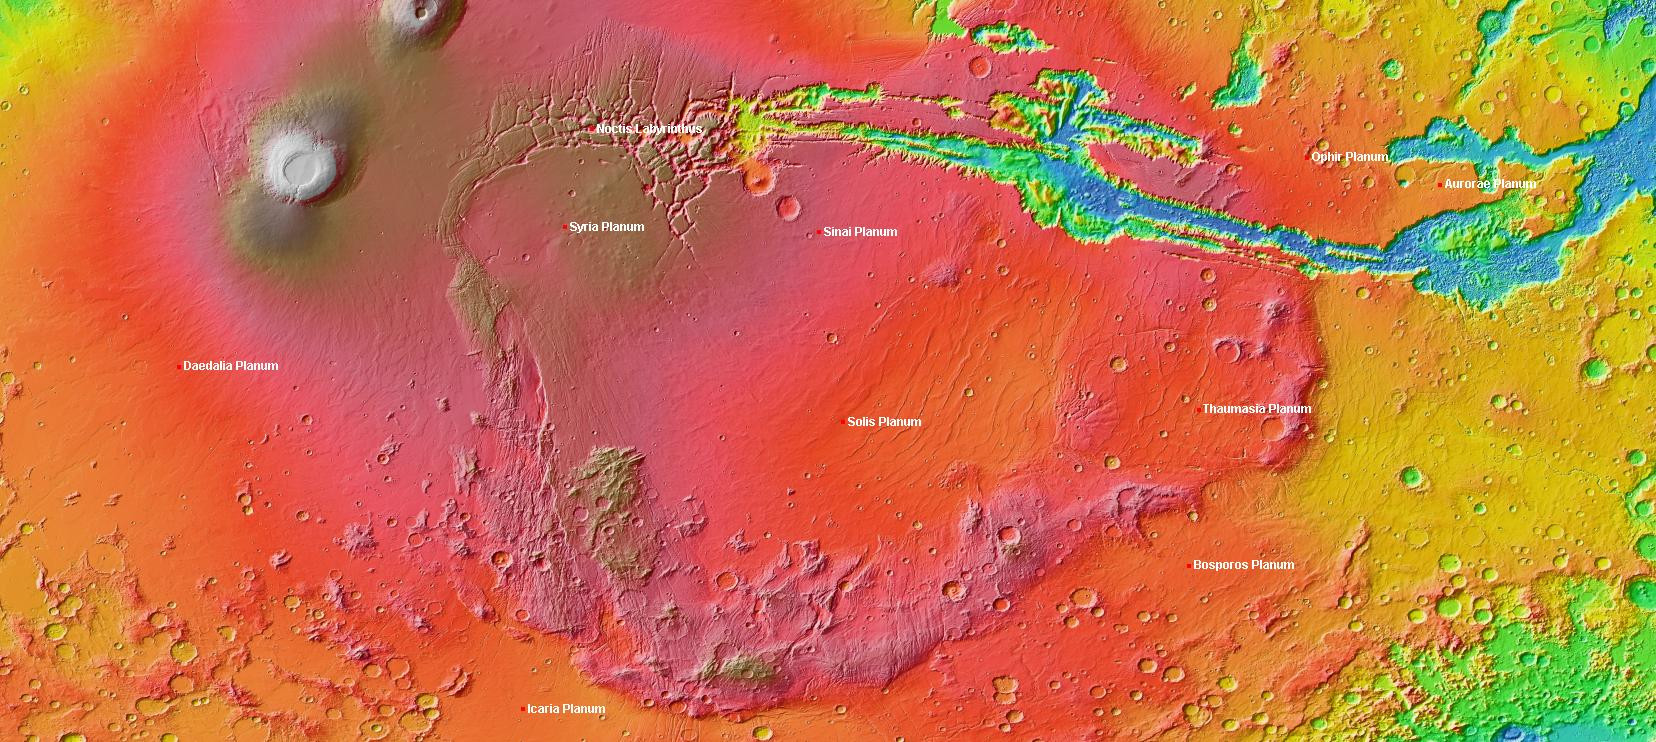 A map of Mars that includes the unusally high elevation region Louisiana State University researchers are studying called Thaumasia Planum. Click the image for a full-size version. Image credit: Wikimedia.